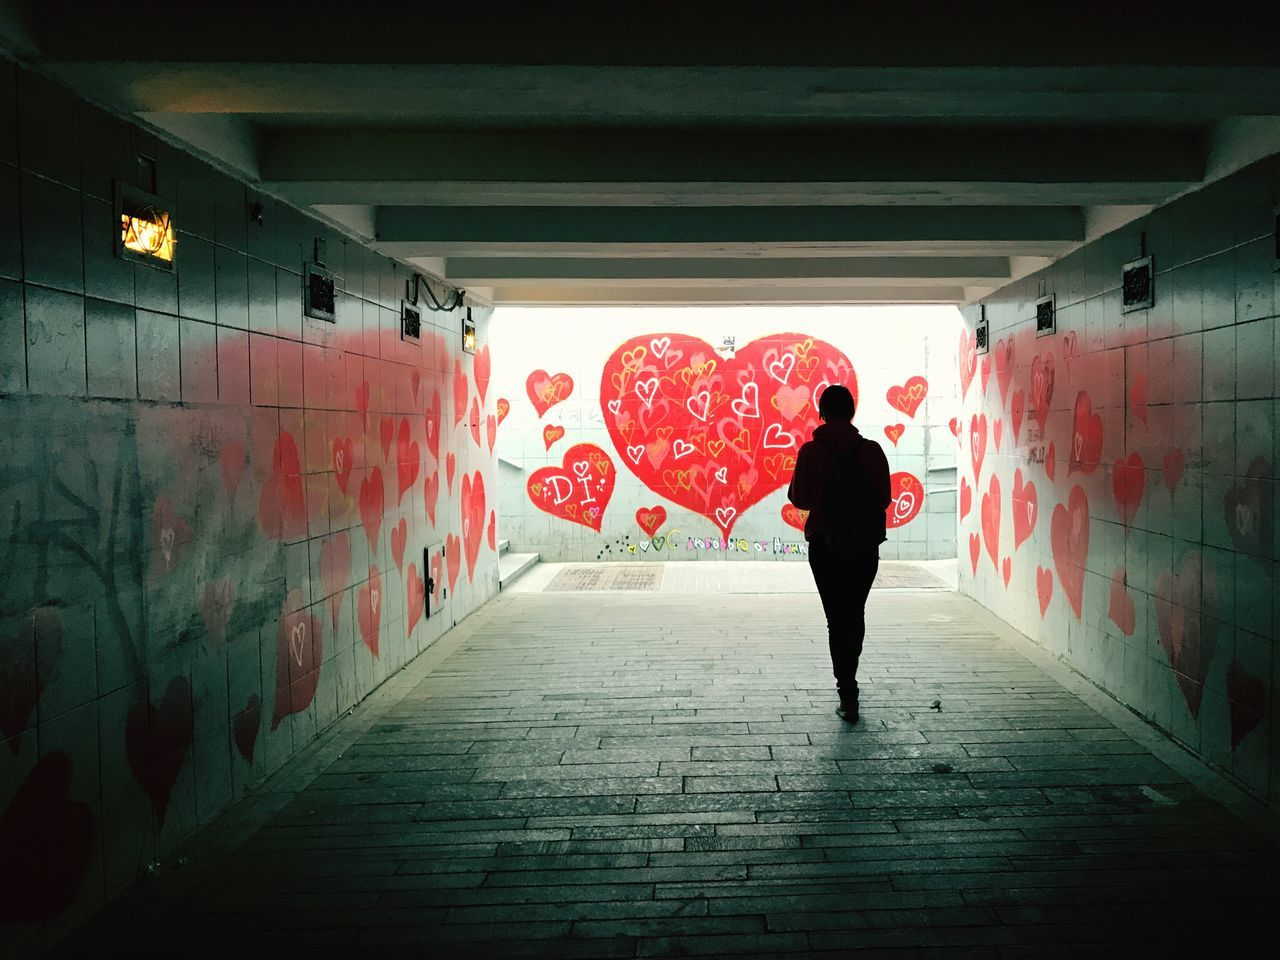 Graffiti Red One Person Real People Full Length Lifestyles Architecture Underground Adults Only Adult Built Structure Outdoors Heart Heart Shape Walking Alone... Walking Wall Art Silhouette Tunnel